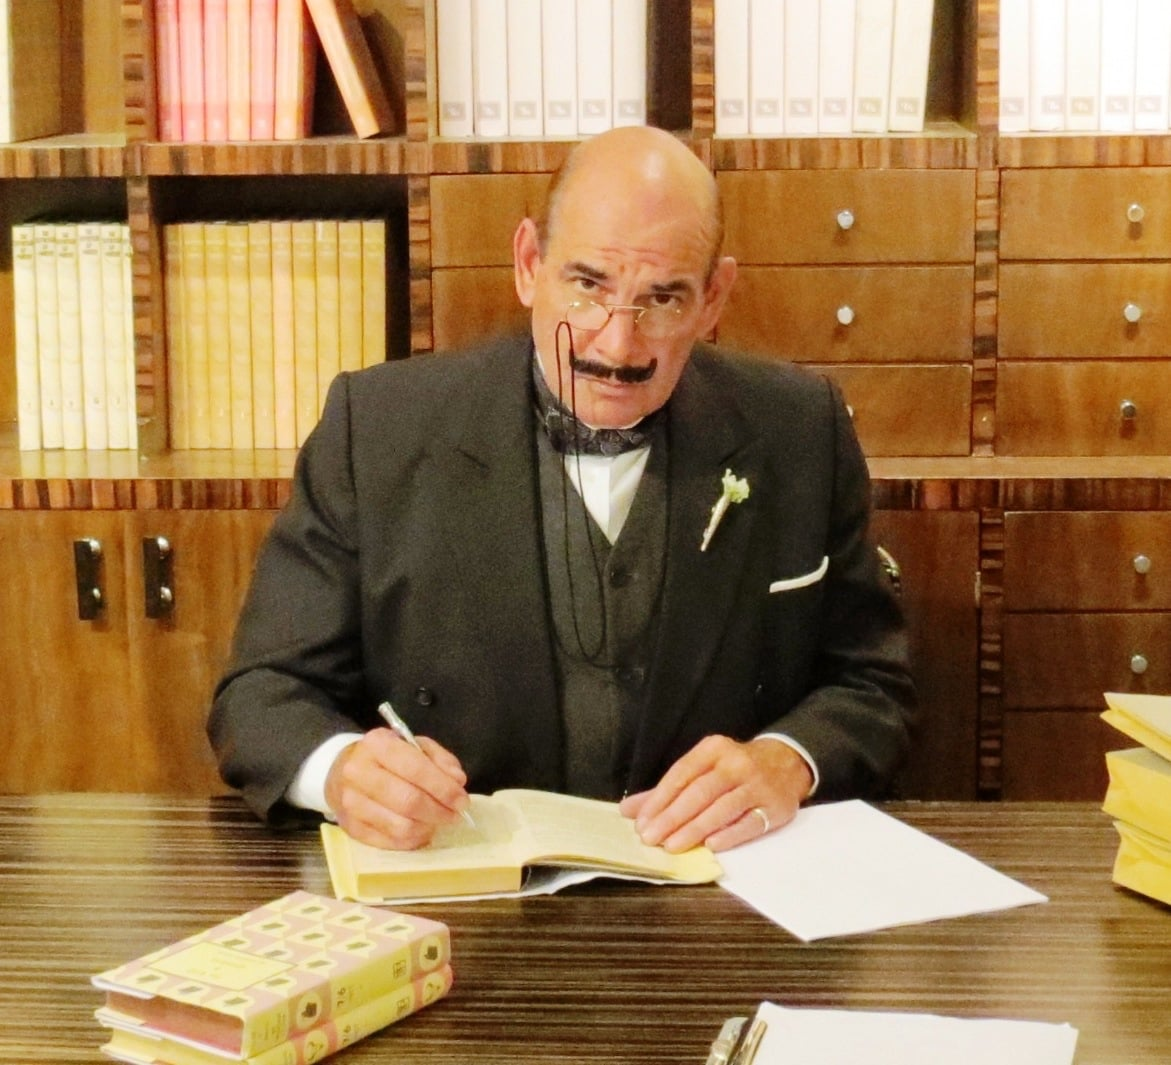 hercule, poirot, events, event, management